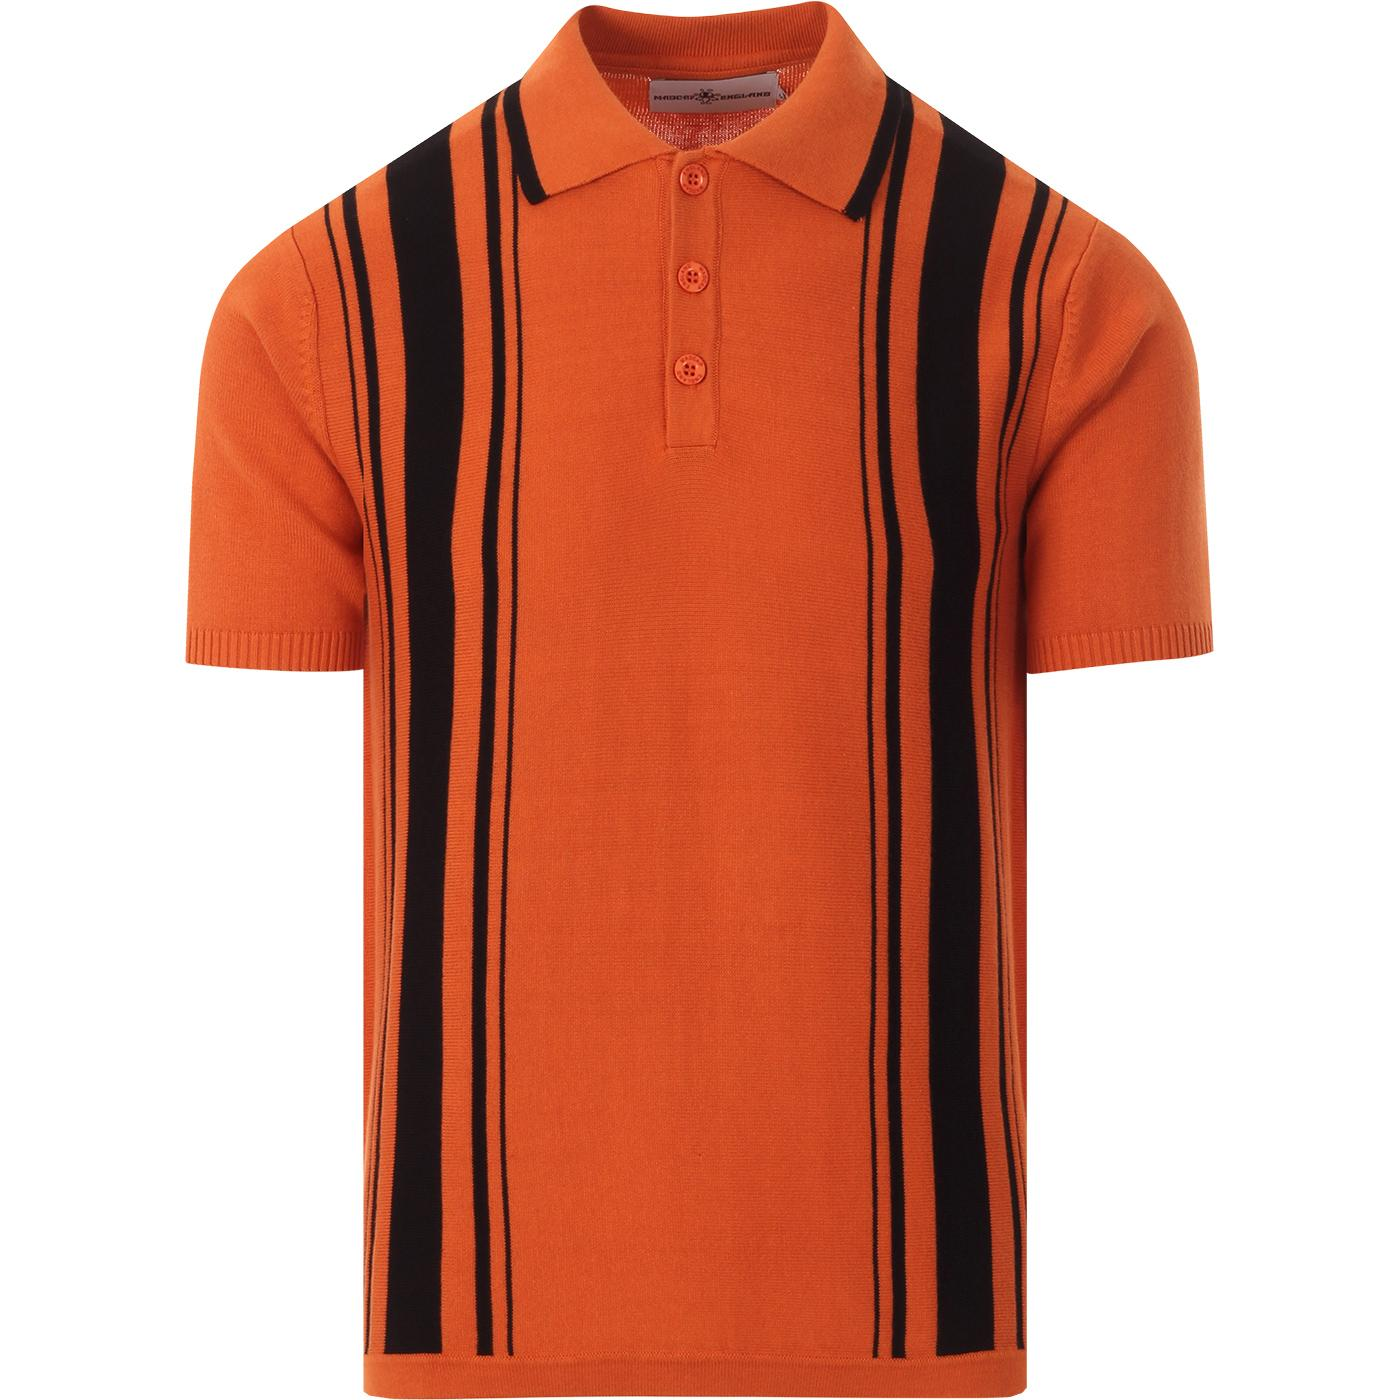 Aftermath MADCAP ENGLAND Mod Stripe Knit Polo RUST